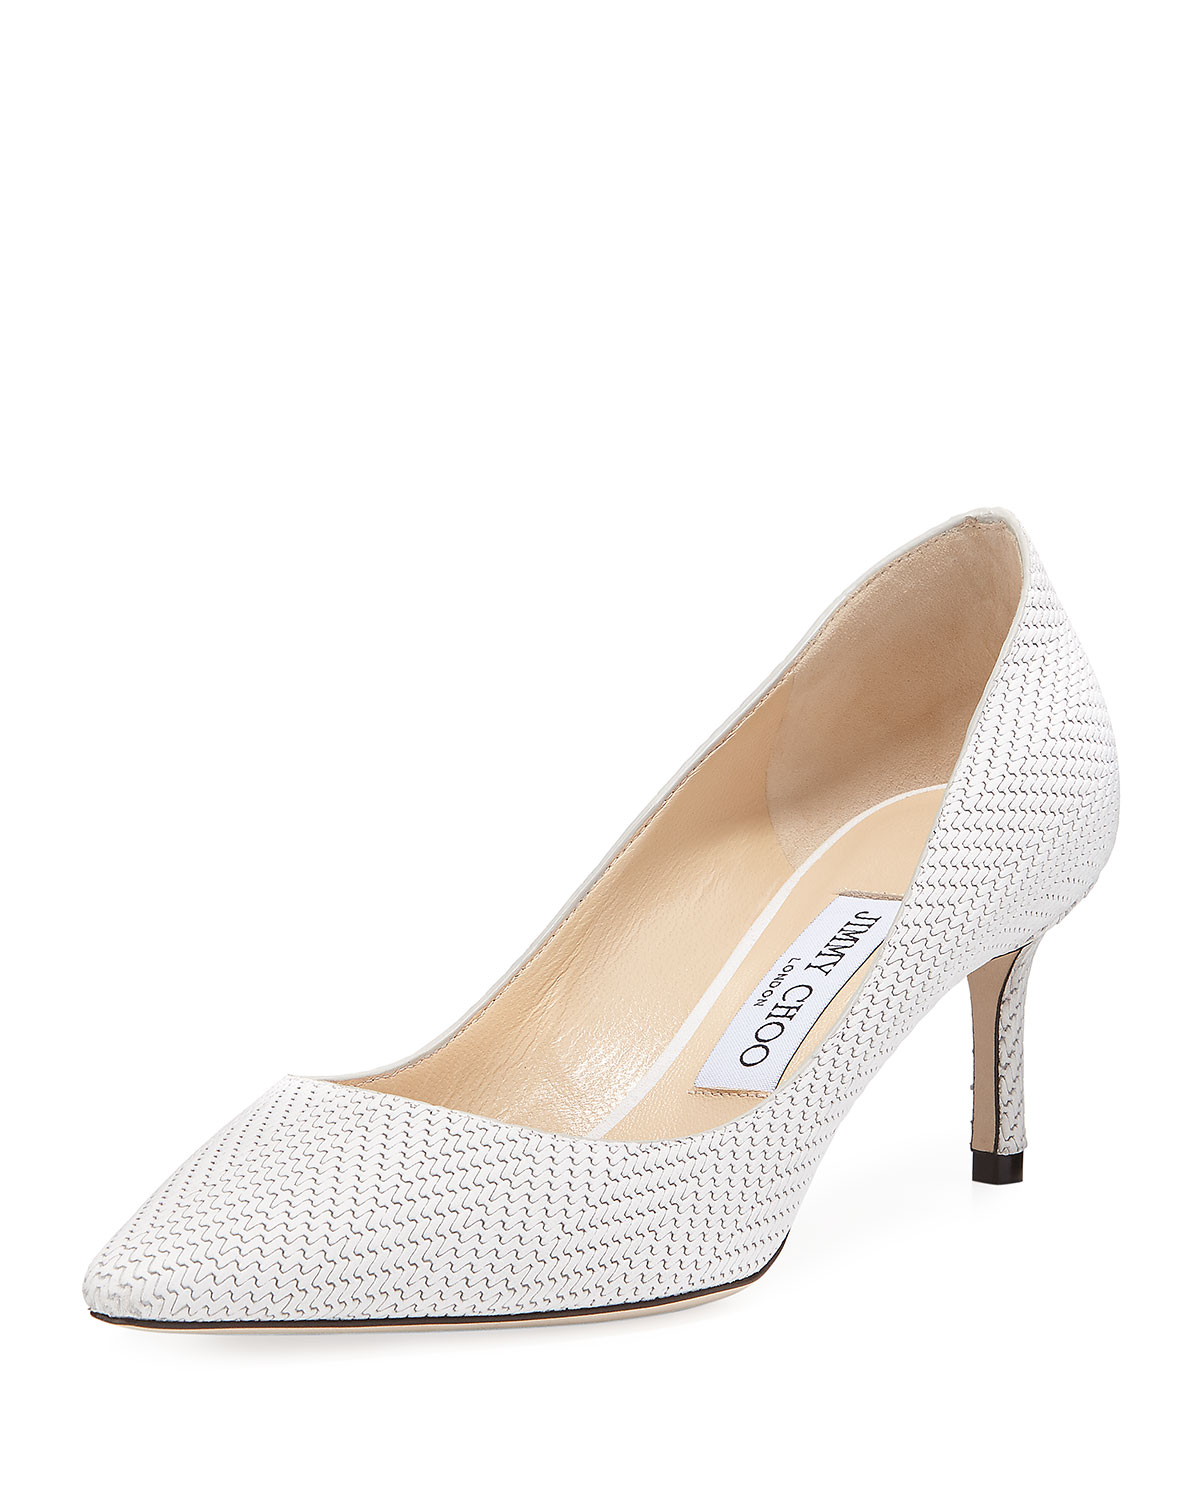 a68ad49dac5 Jimmy Choo Romy 60mm Textured Leather Pump